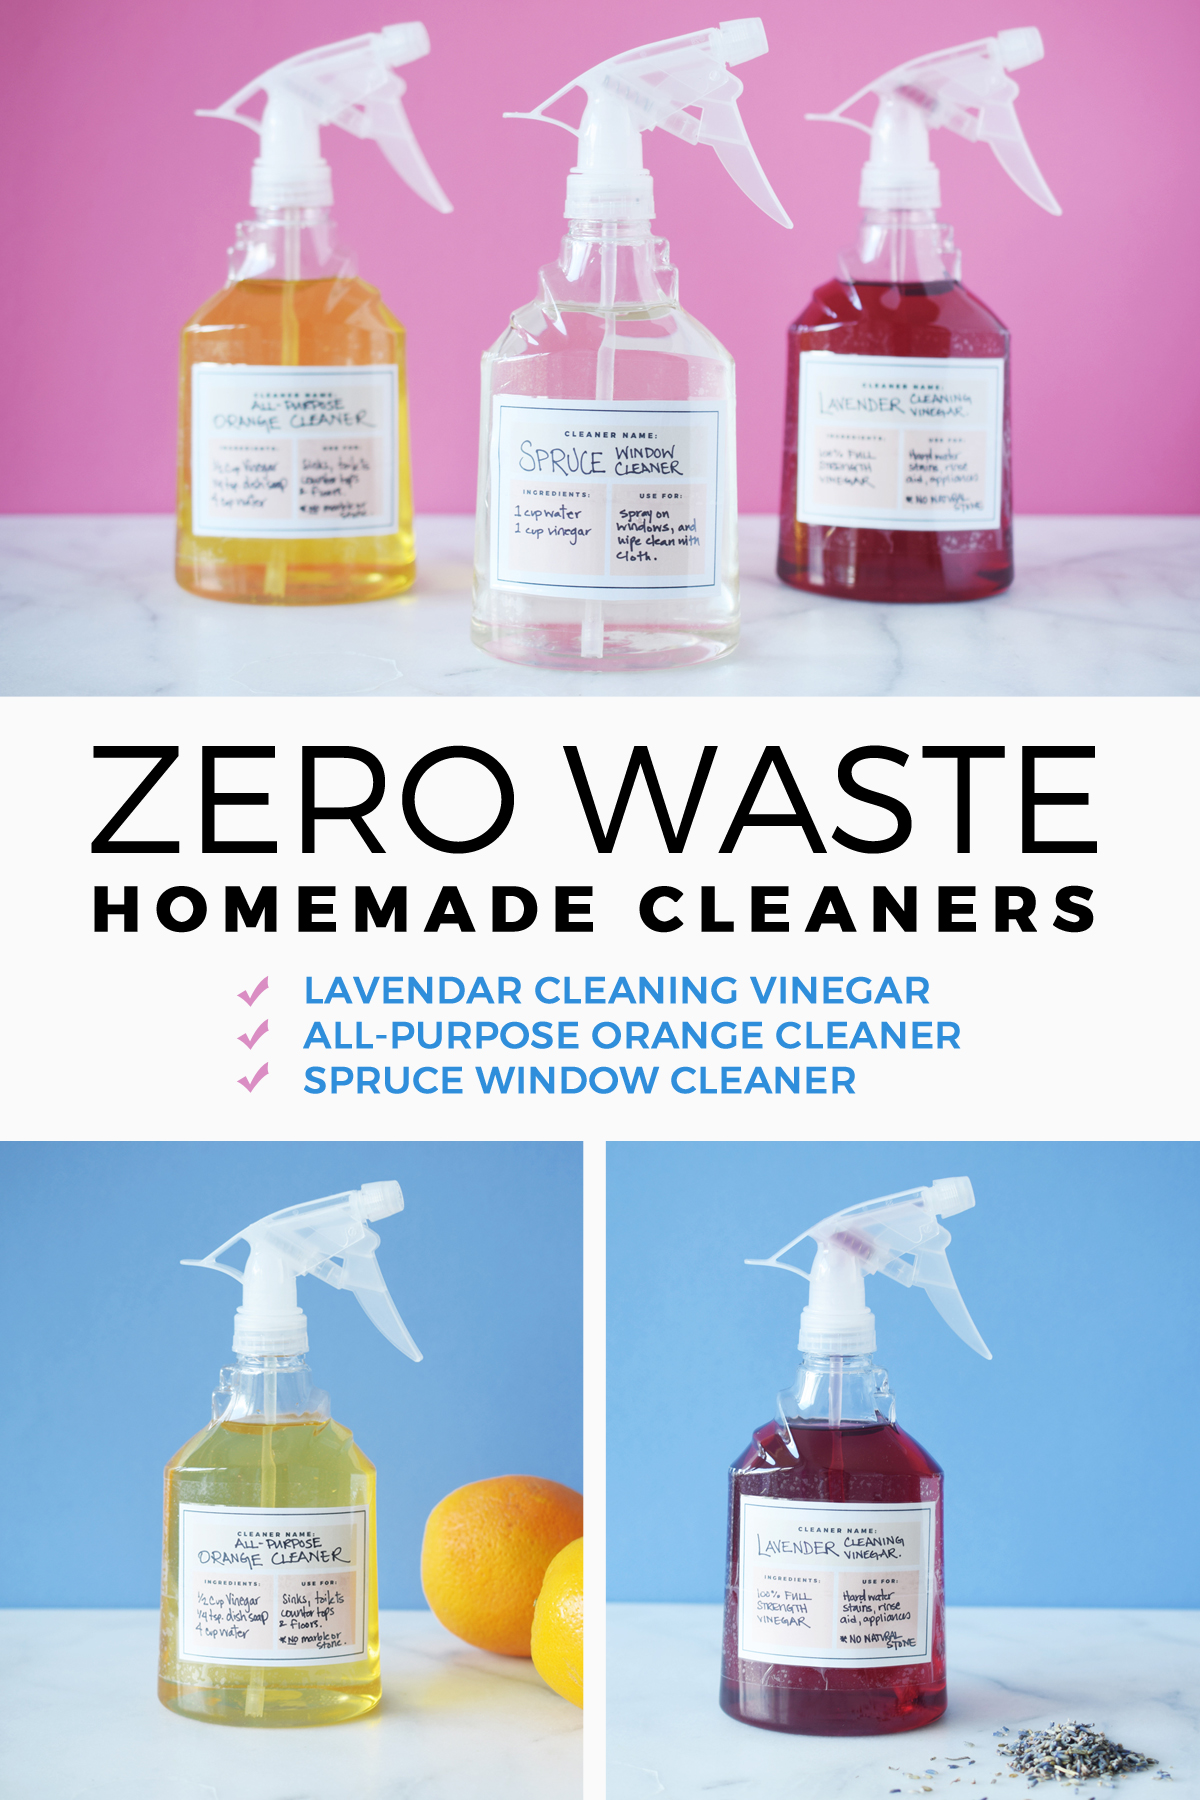 Homemade cleaner with vinegar. 3 Cleaners To Stop Buying And Start Making. Zero Waste All Purpose Natural Cleaners using citrus peels, lavender, spruce tips and vinegar. These recipes are so easy to make and much cheaper than buying cleaners at the grocery store. Disinfect, clean your bathroom, kitchen, floor, showers and more. They smell good and are made with orange peels. Includes tips and tricks with recipes and it works.